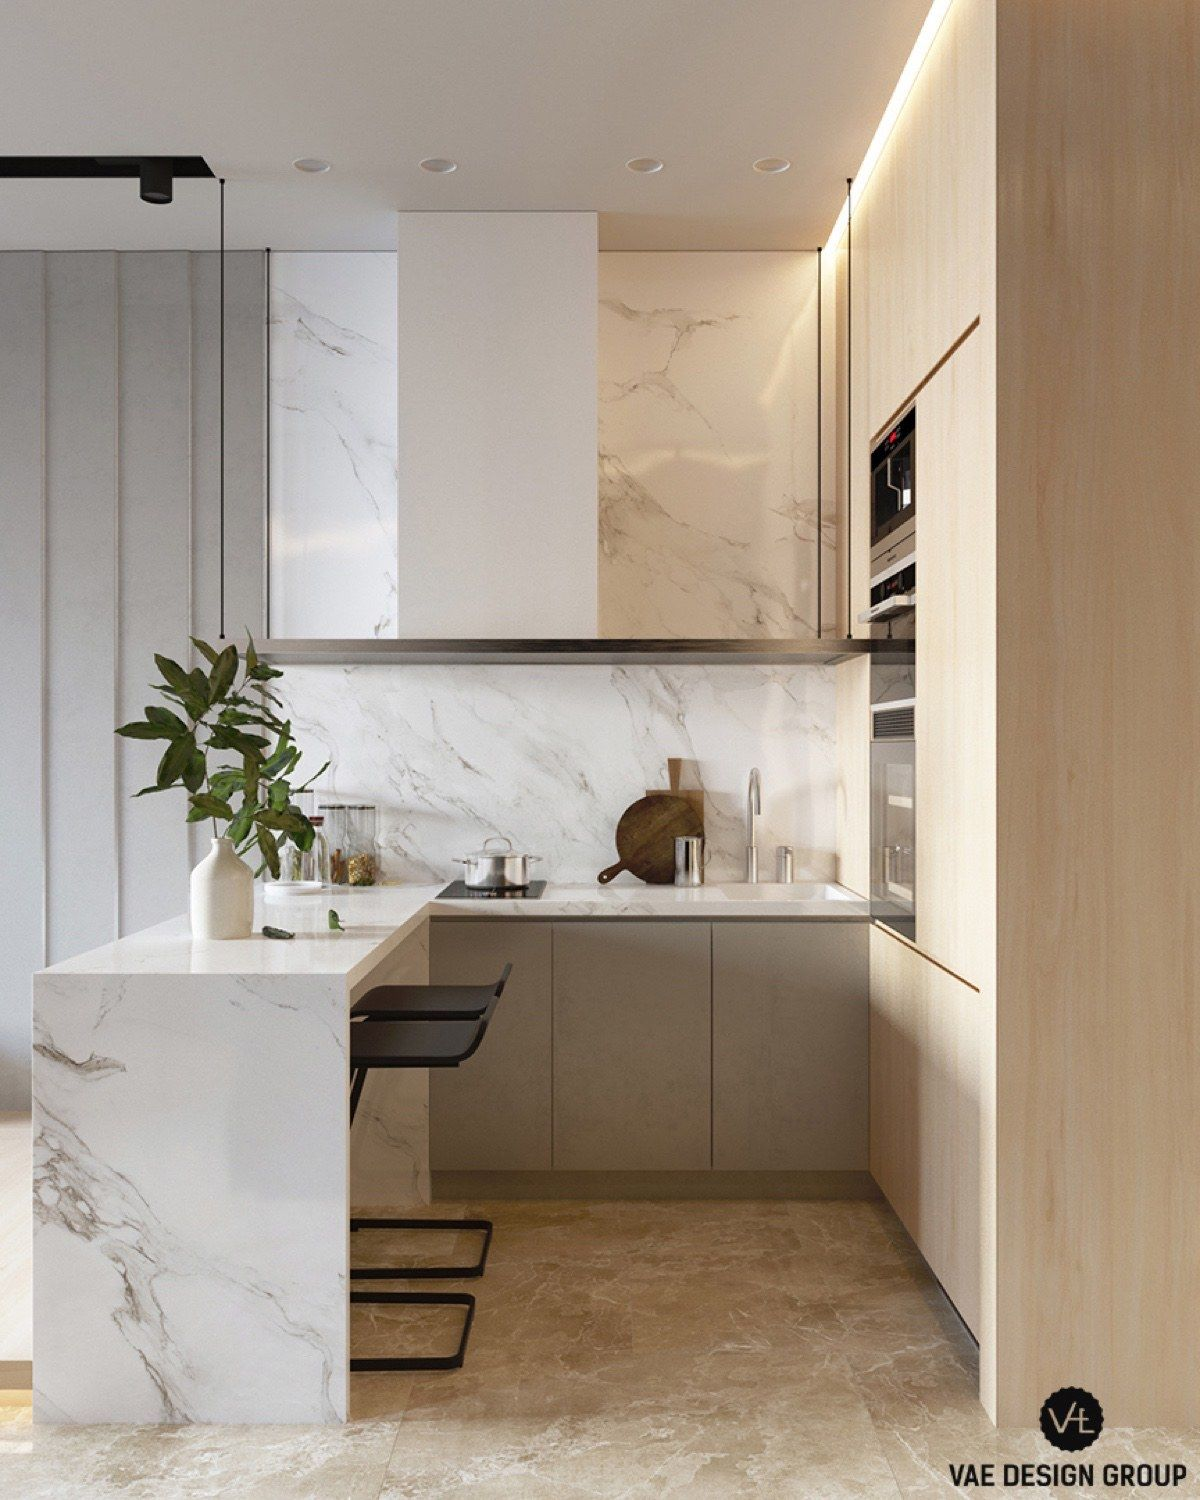 3 Small Studio Apartments That Exude Luxurious Space Small Apartment Kitchen Kitchen Decor Apartment Studio Apartment Kitchen